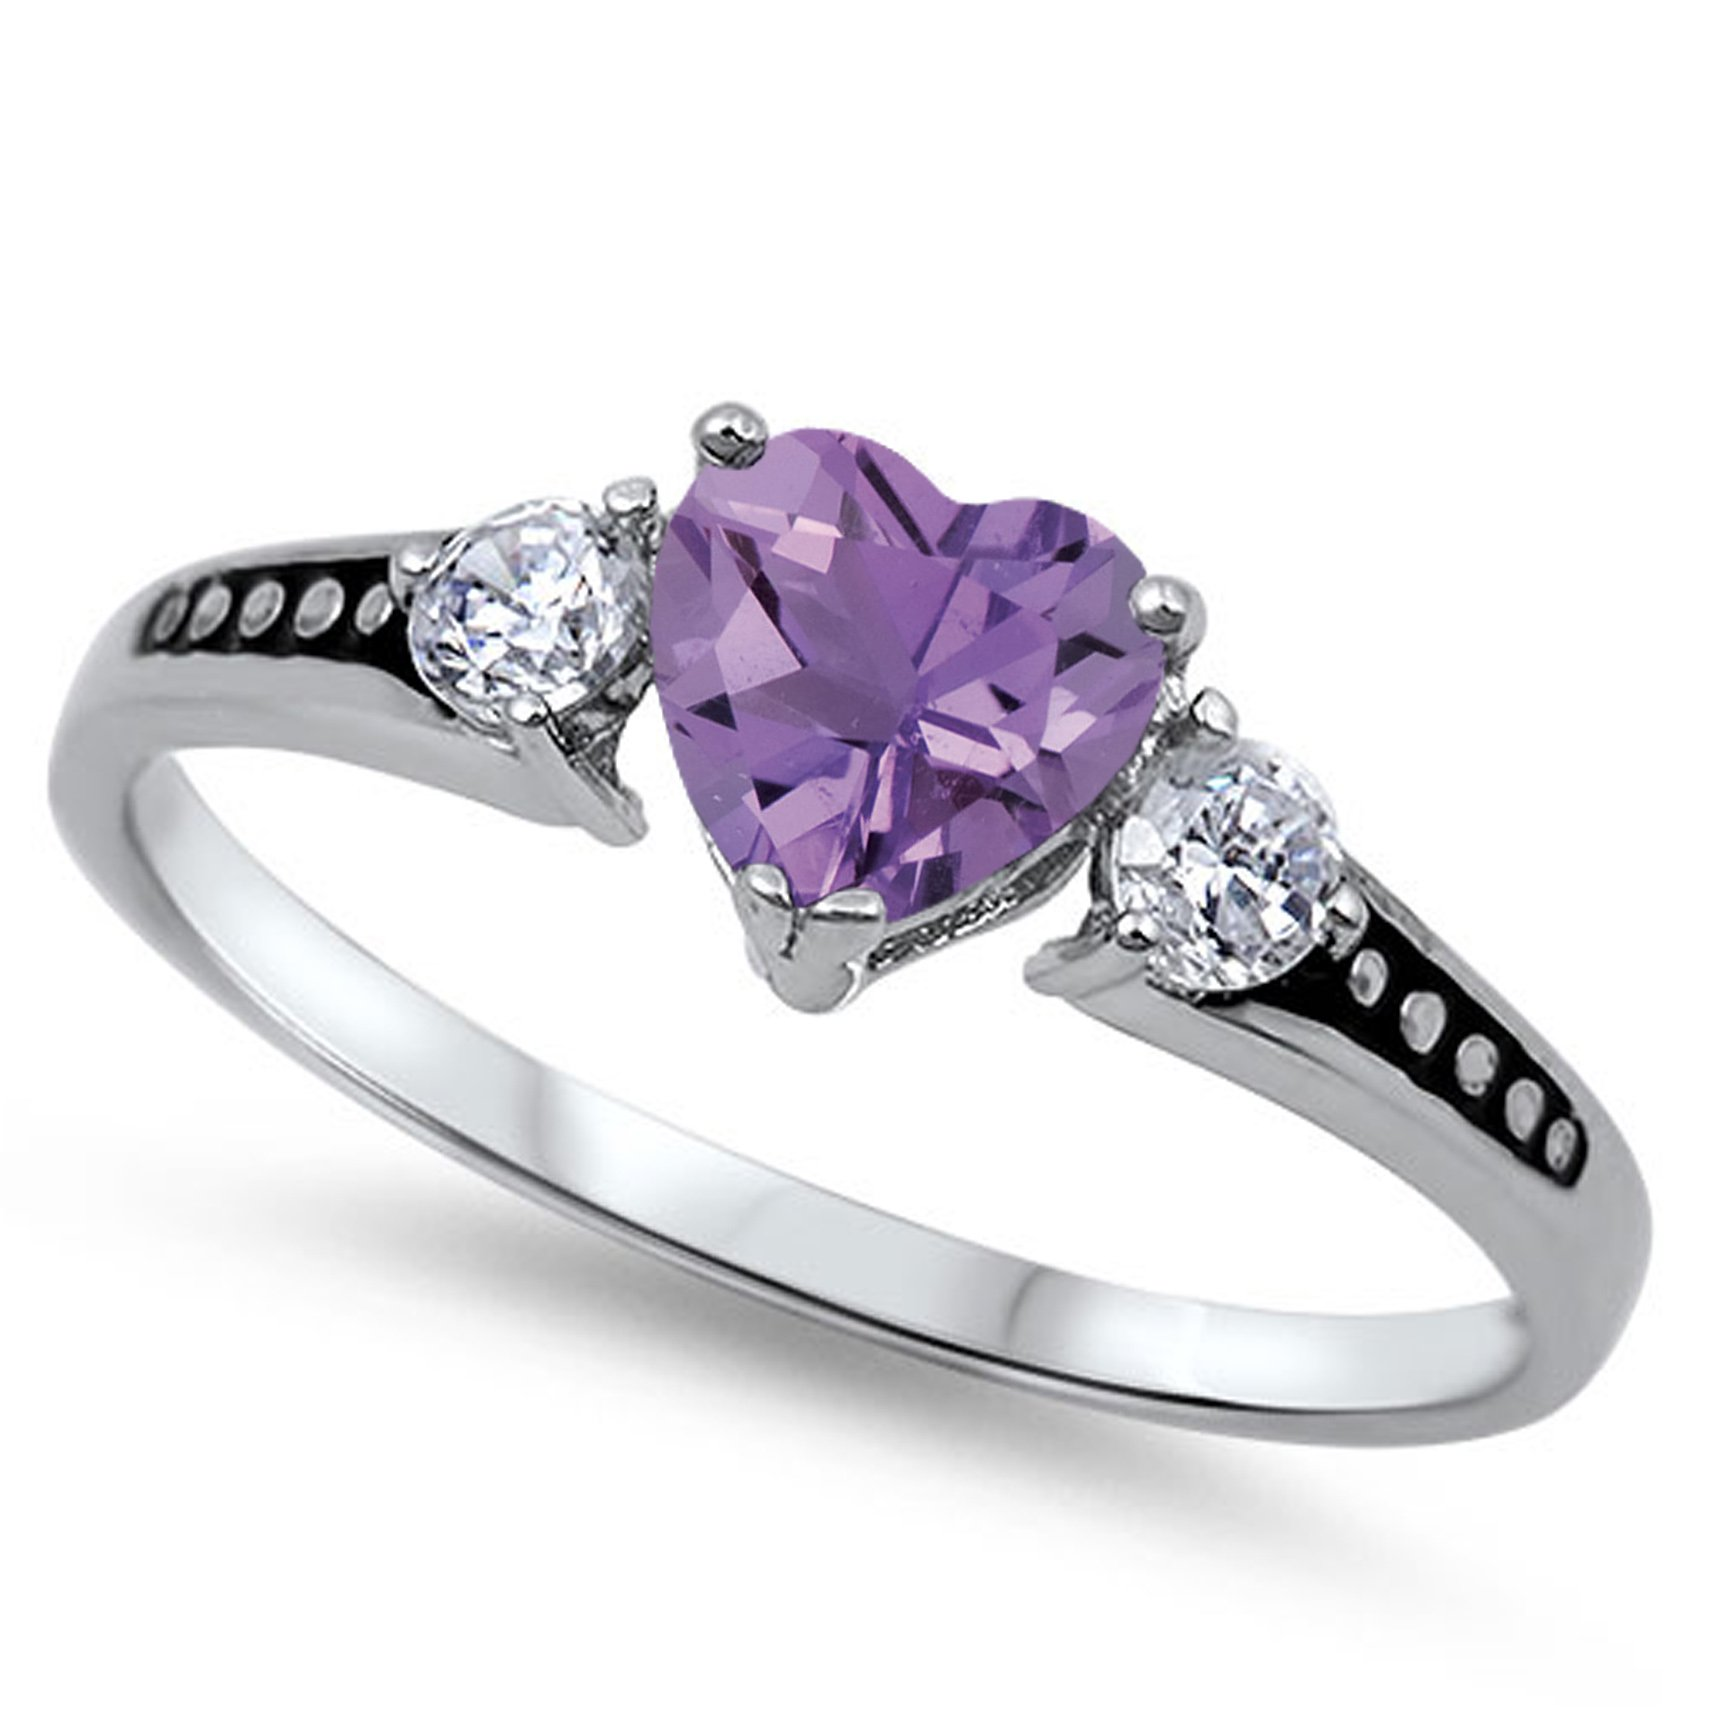 925 Sterling Silver Faceted Natural Genuine Purple Amethyst Heart Promise Ring Size 12